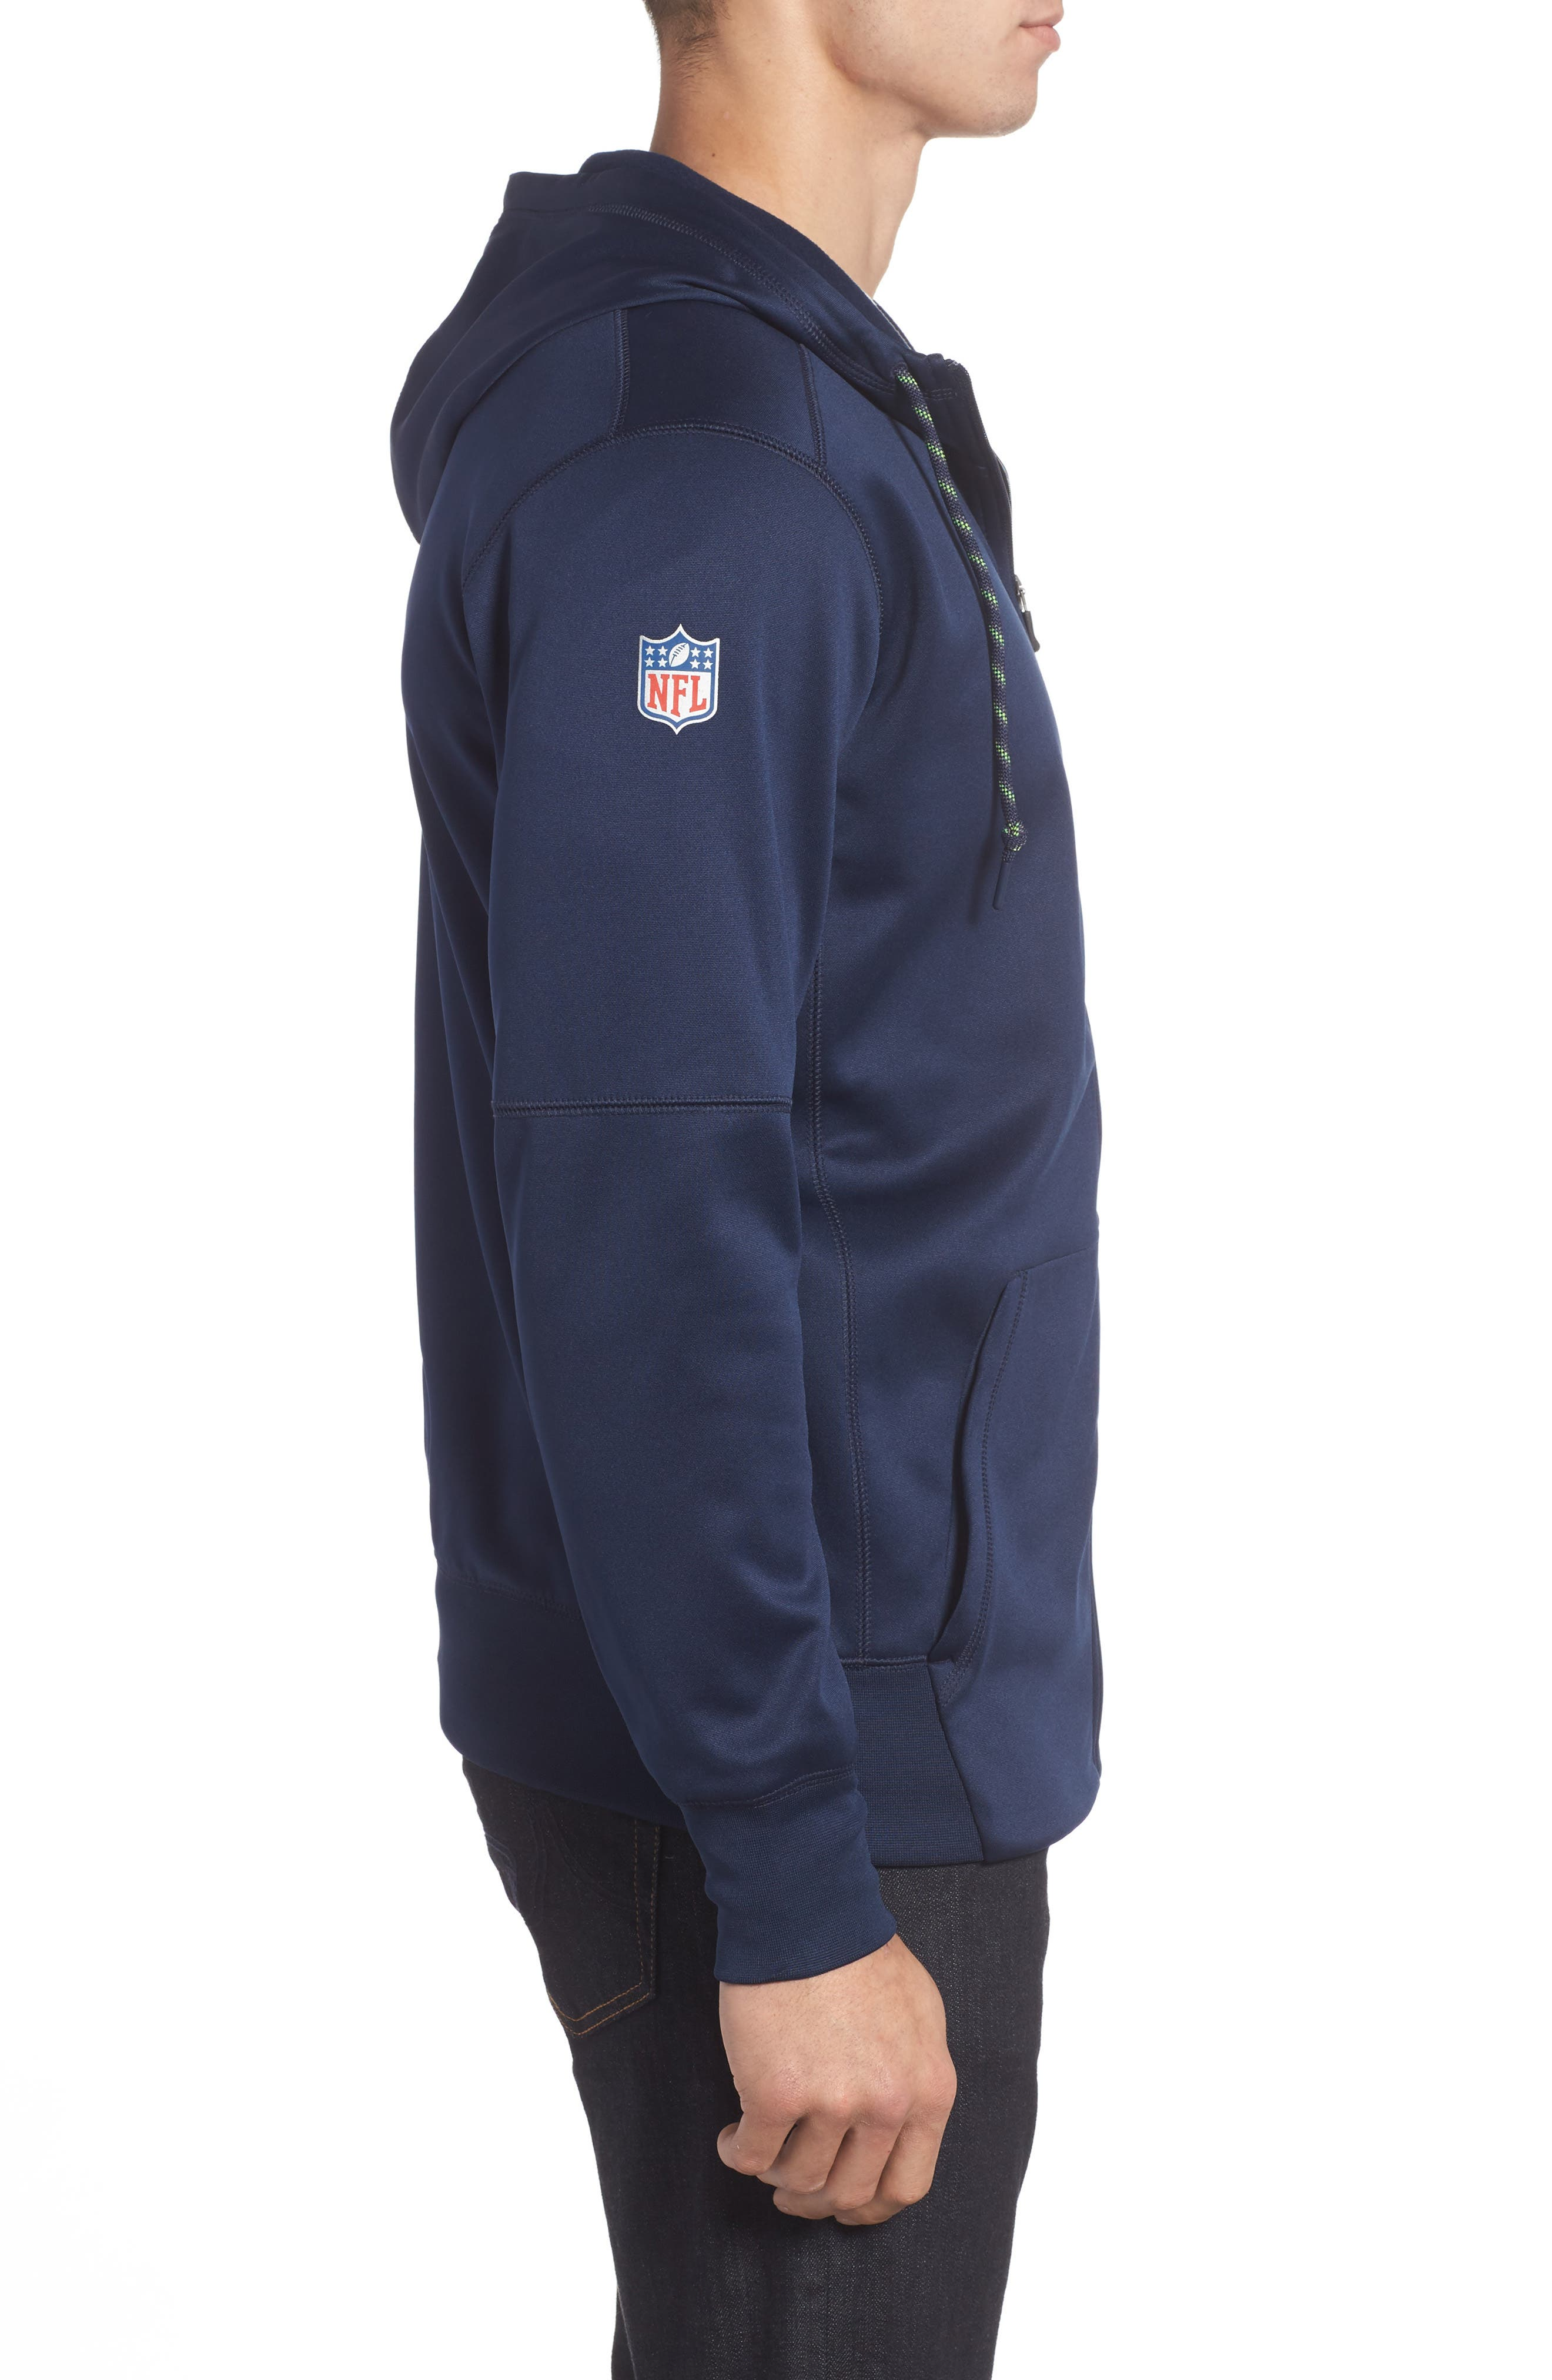 Therma-FIT NFL Graphic Zip Hoodie,                             Alternate thumbnail 20, color,